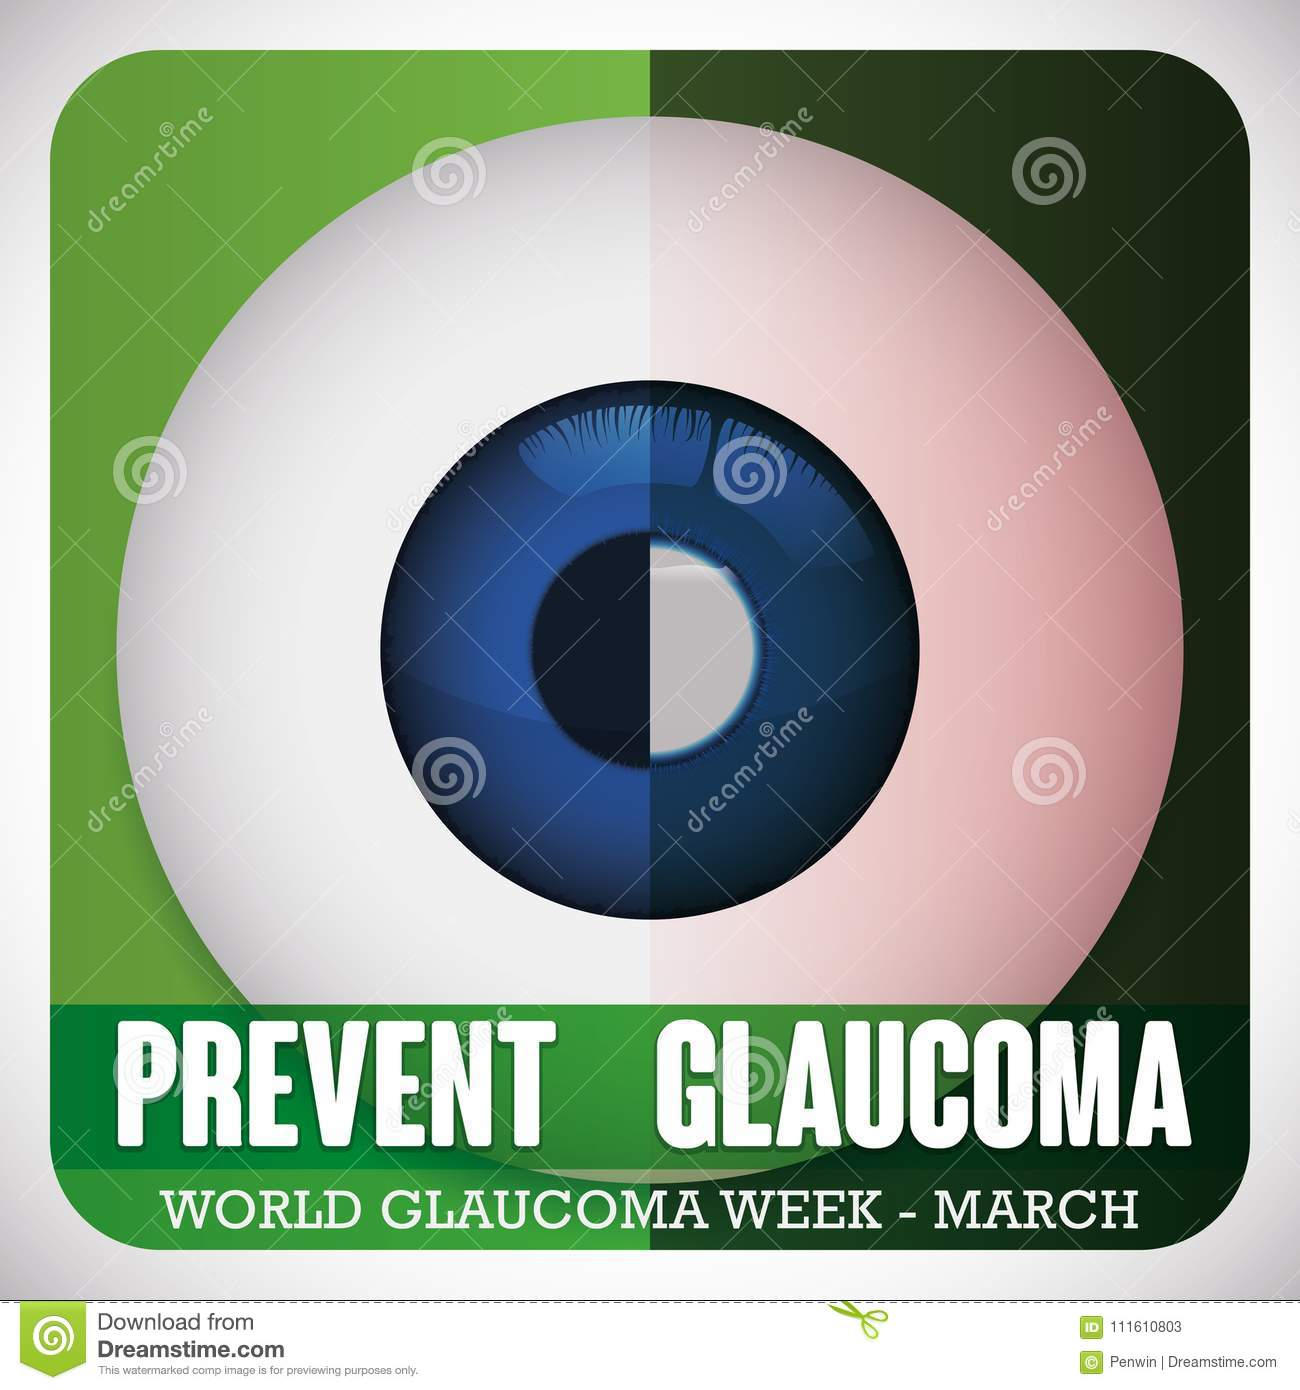 Comparative Eyeball of Healthy and Sick Eye for Glaucoma Week, Vector Illustration